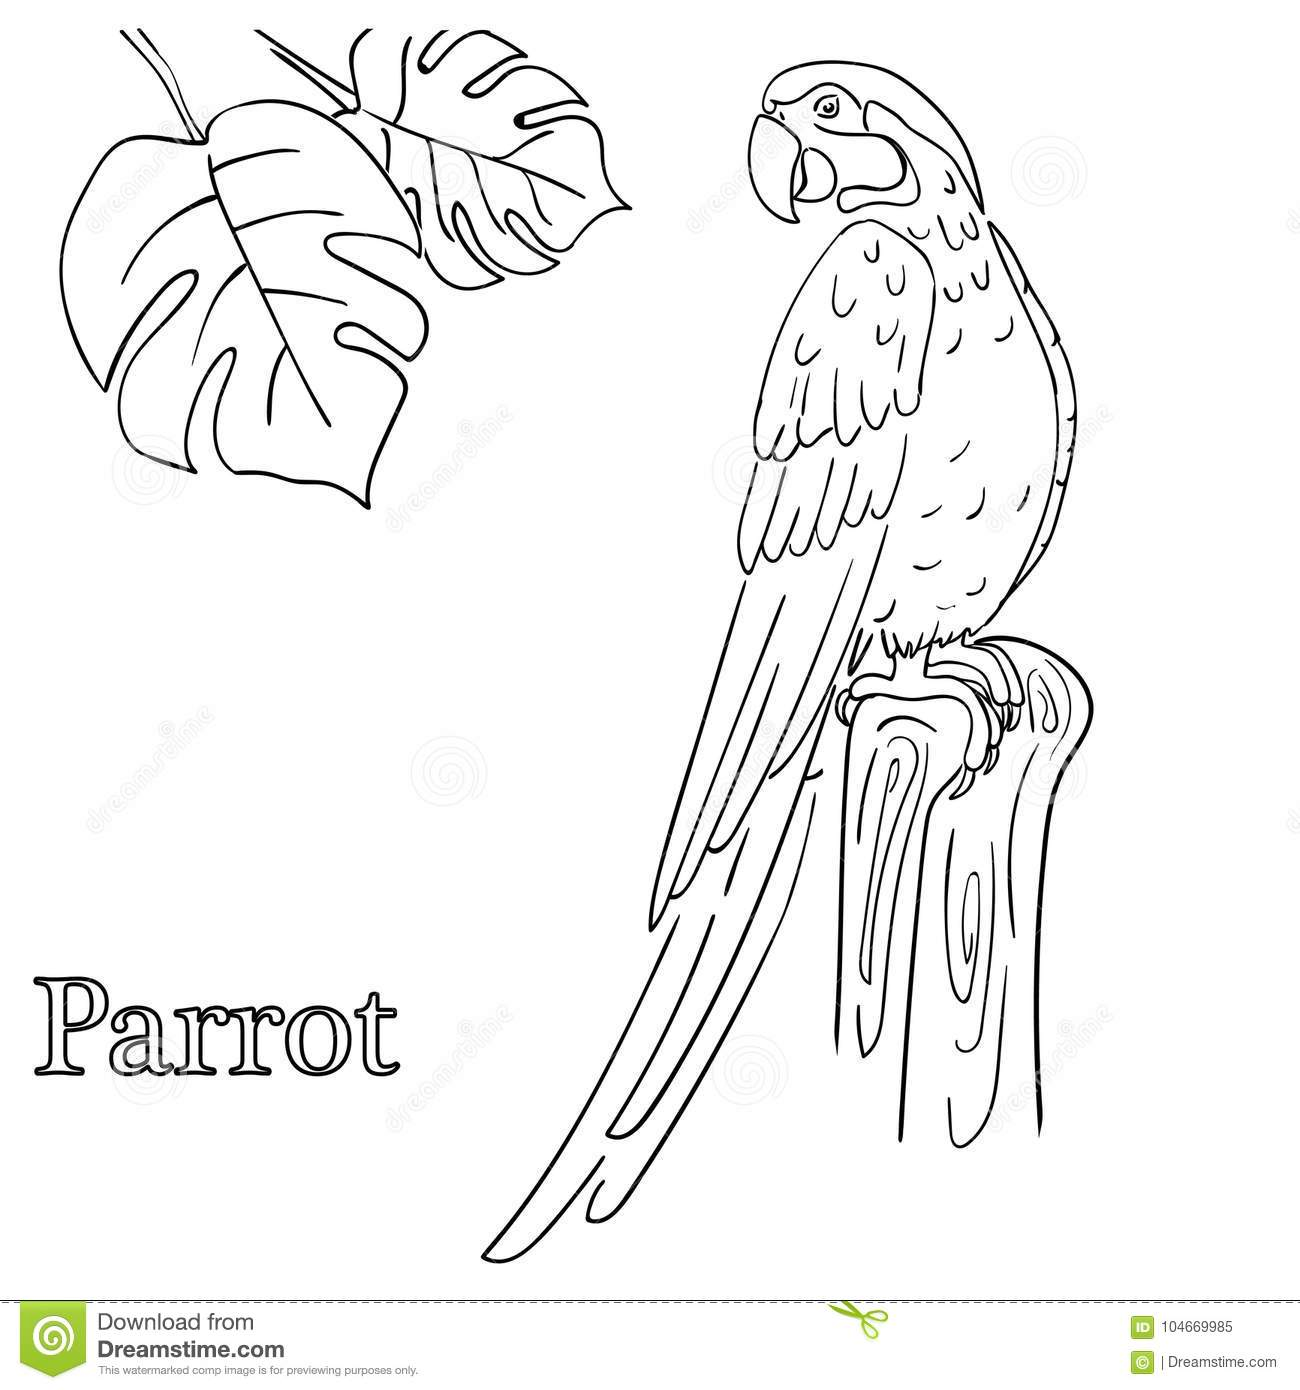 Parrot Coloring Pages - ColoringBay | 1390x1300